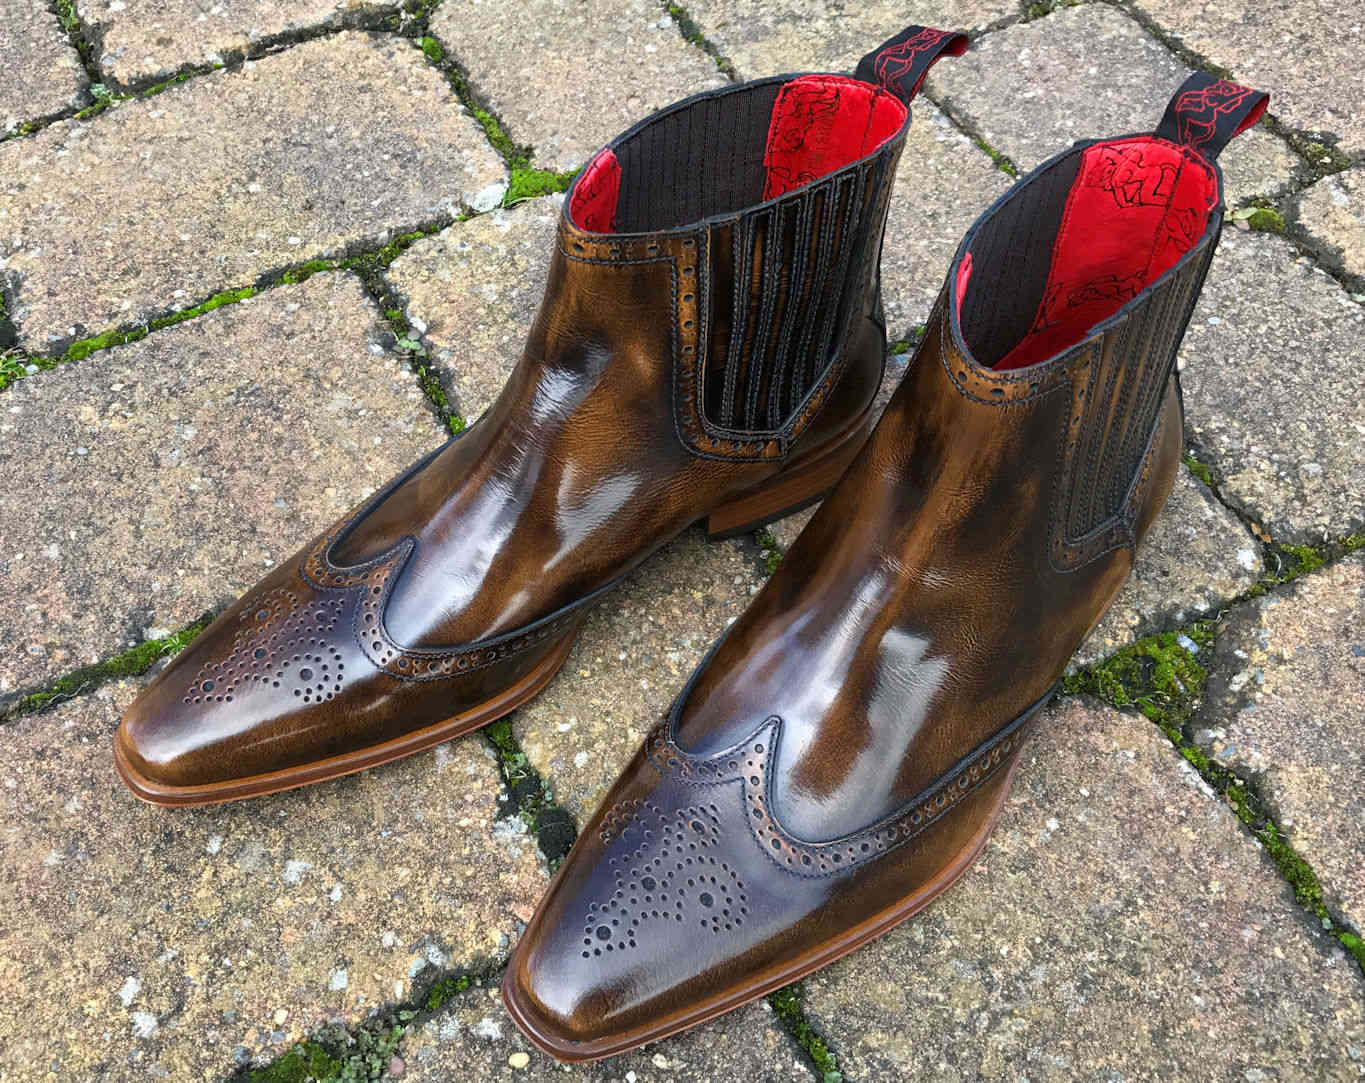 Pointed Dealer Boots by Jeffery West in Brown Polished